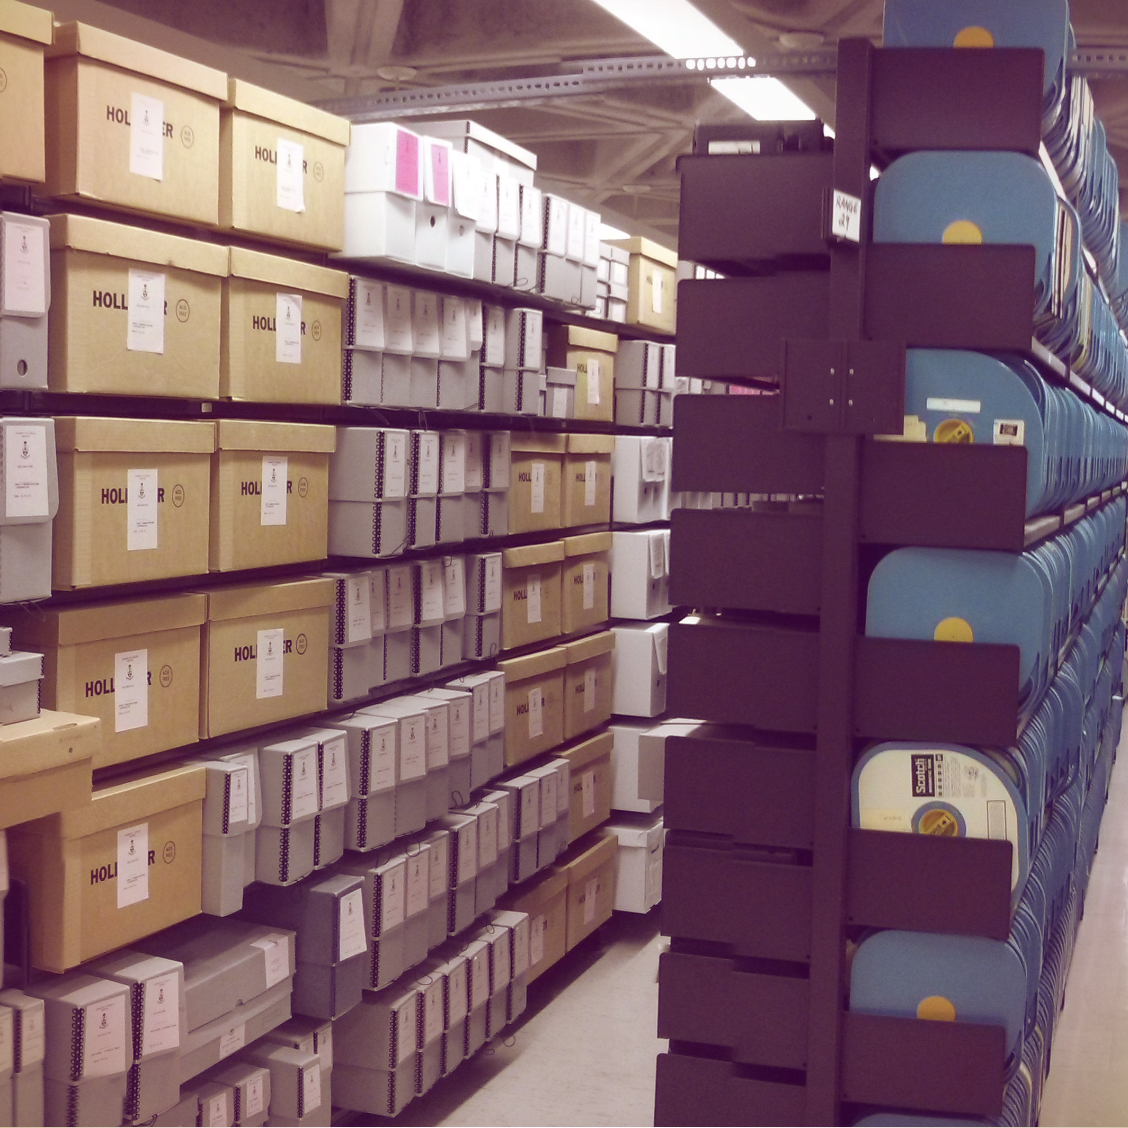 Image of the University of Toronto Archives stacks